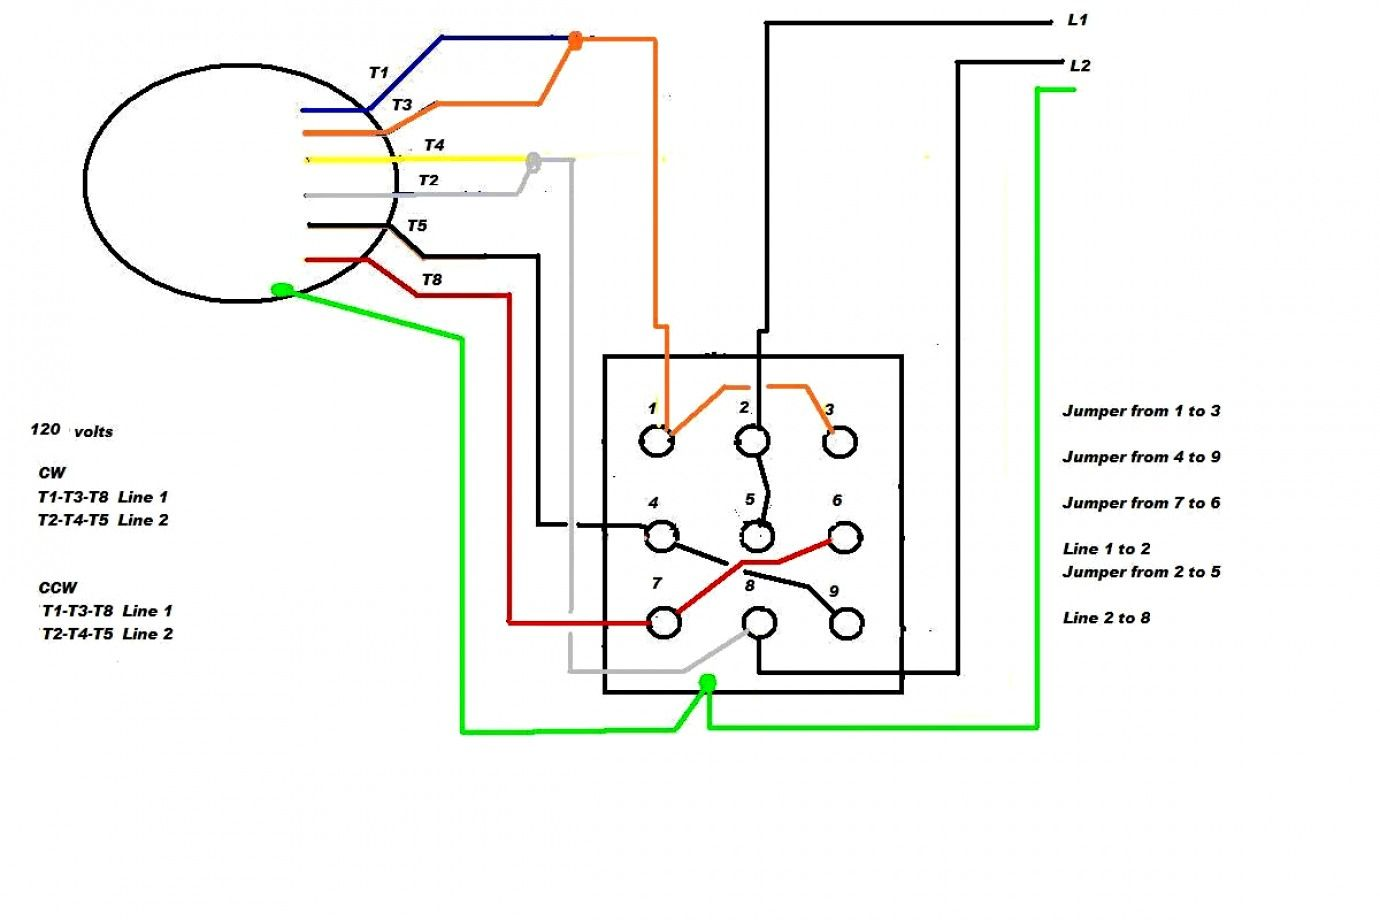 single phase wiring diagram for house wiring diagram diagram marathon electric 3 phase wiring diagram [ 1380 x 920 Pixel ]